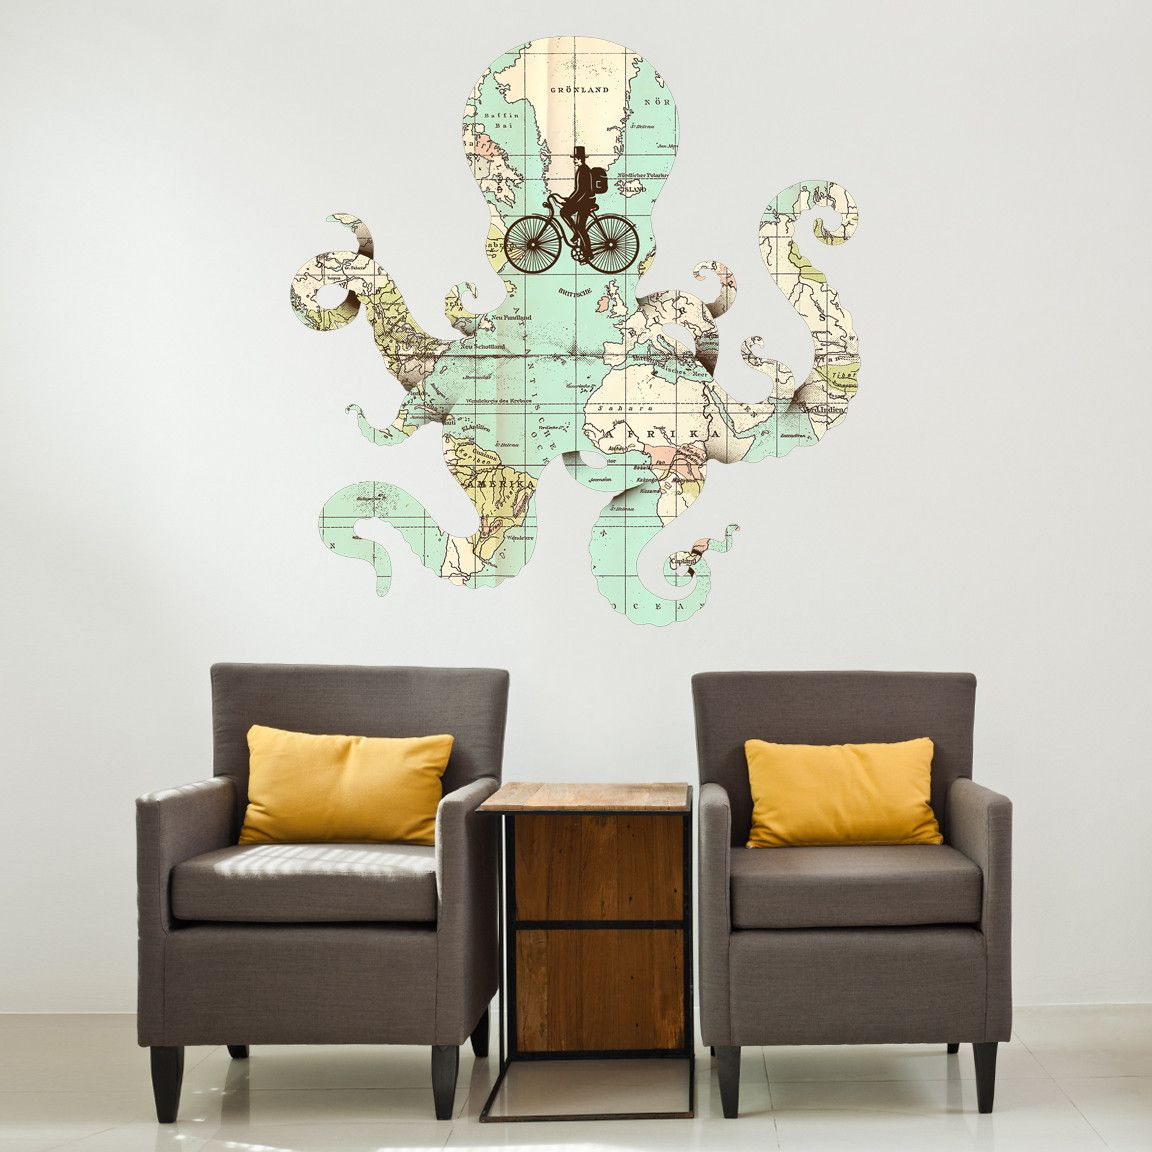 Enkel dikas all around the world wall decal wall decals walls see the world through bicycle tires which are actually eyesof a octopus shaped map enkel dika is an artist whose work speaks for itself gumiabroncs Images